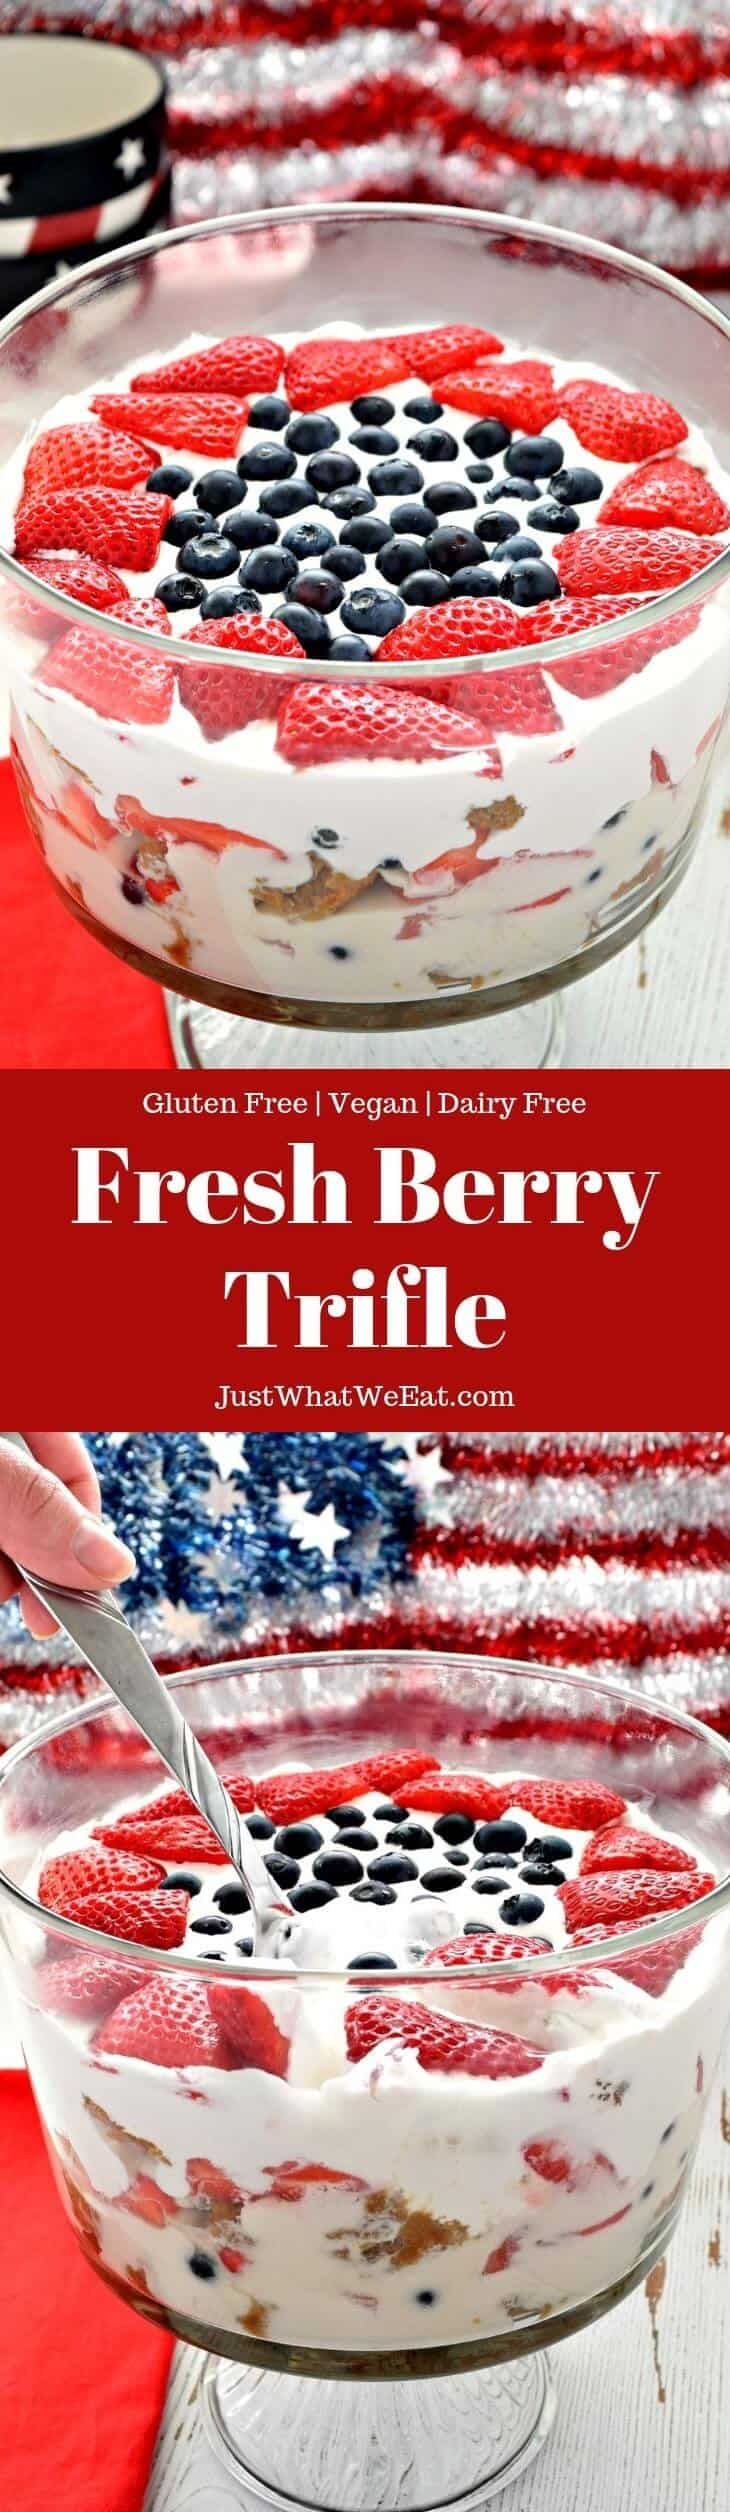 This gluten free and vegan Berry Trifle is perfect for your next family gathering! With layers of gluten free vanilla cake, coconut whipped cream, and fresh fruit, this is sure to be a dessert everyone will enjoy!